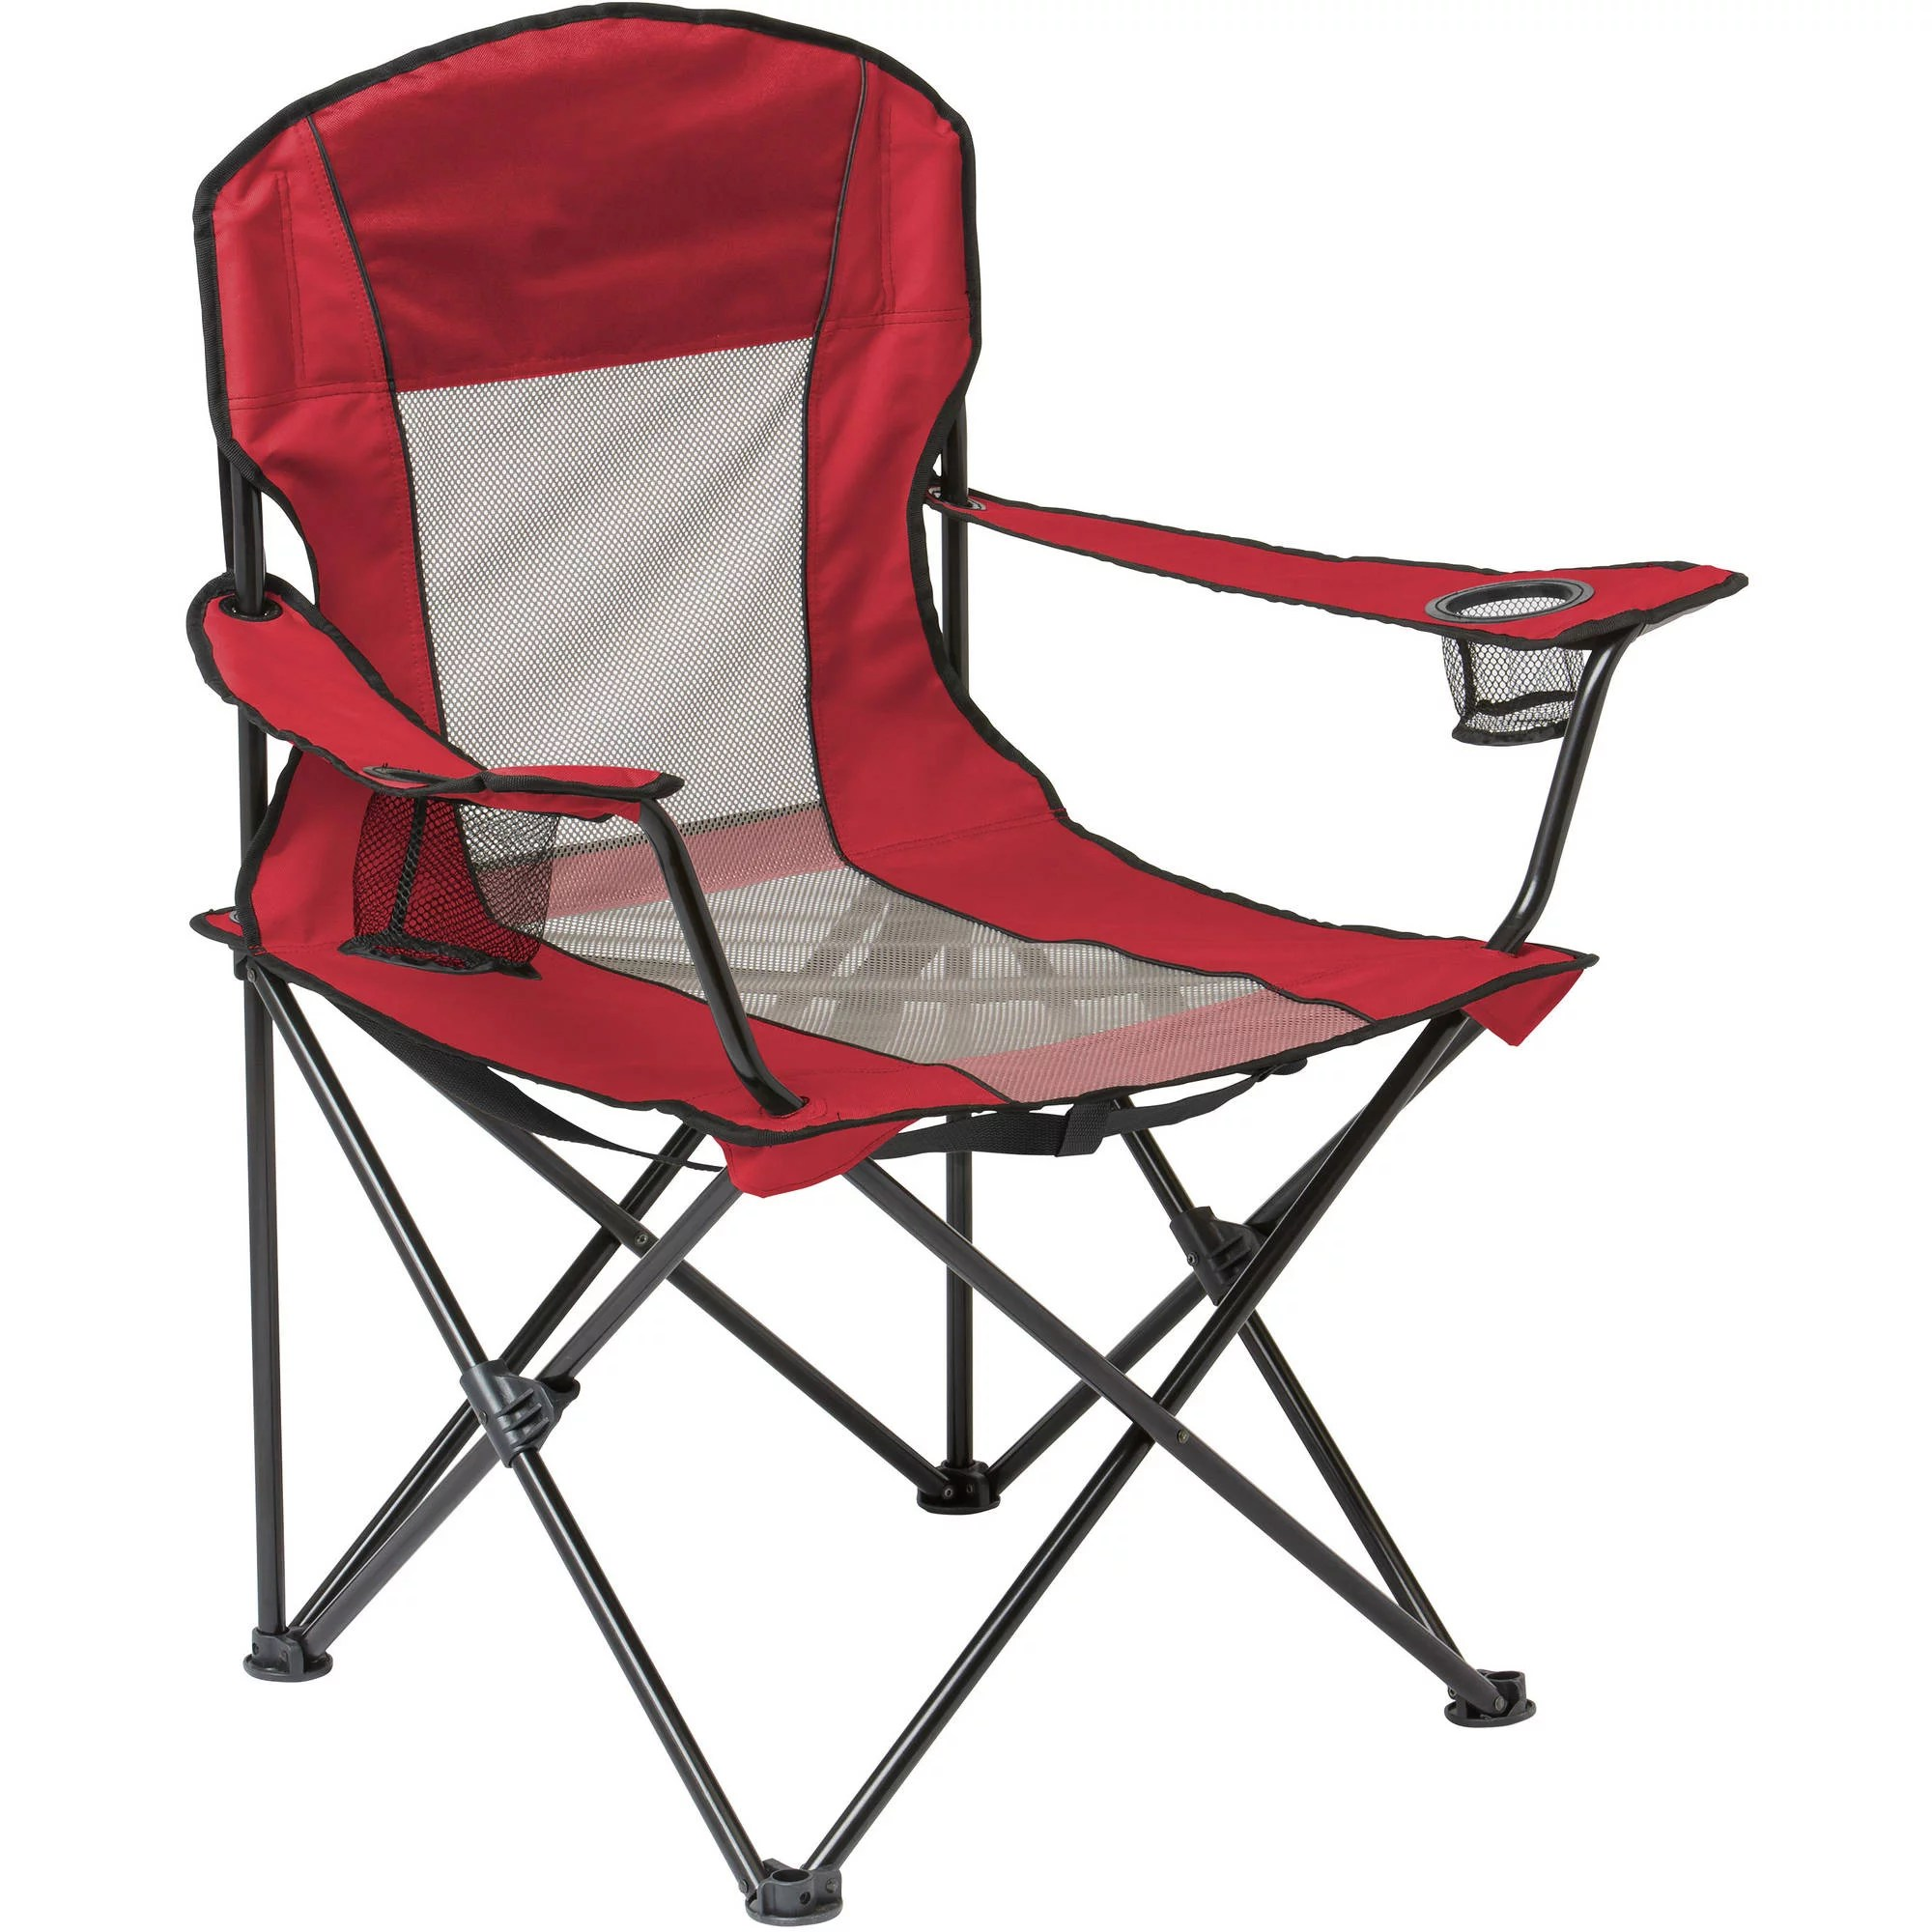 walmart fold out chair how to make a hammock lovely soft folding chairs rtty1